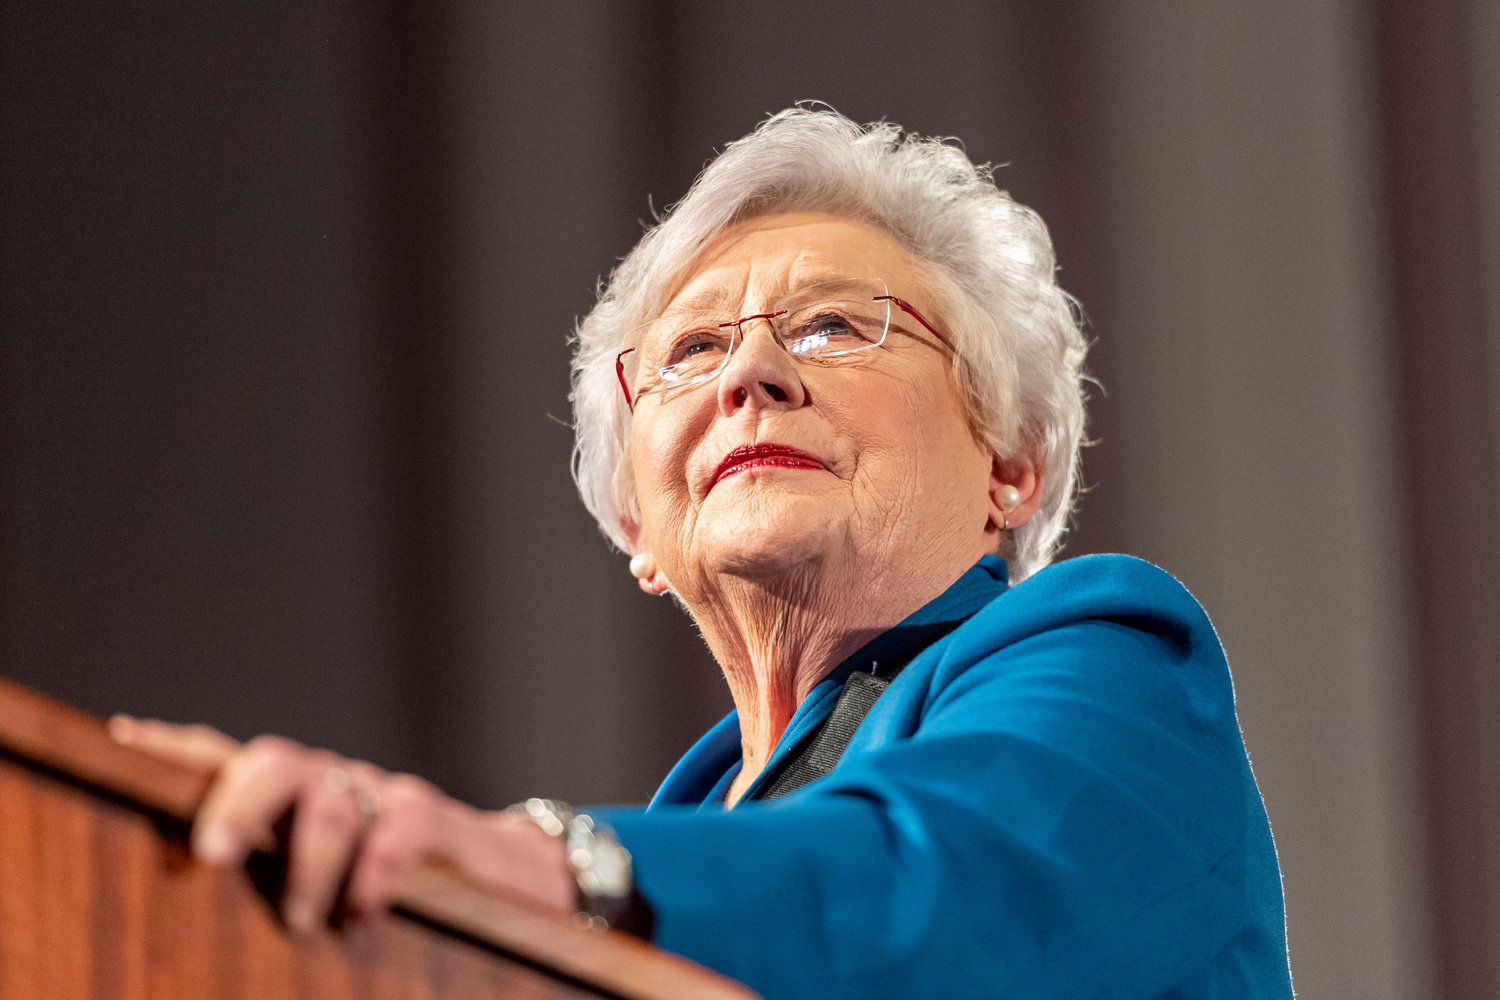 Gov. Kay Ivey gives the State of the State Address to a joint session of the Alabama Legislature on Tuesday, Feb. 4, 2020, in the old house chamber of the Alabama State Capitol in Montgomery, Ala. (AP Photo/Vasha Hunt)